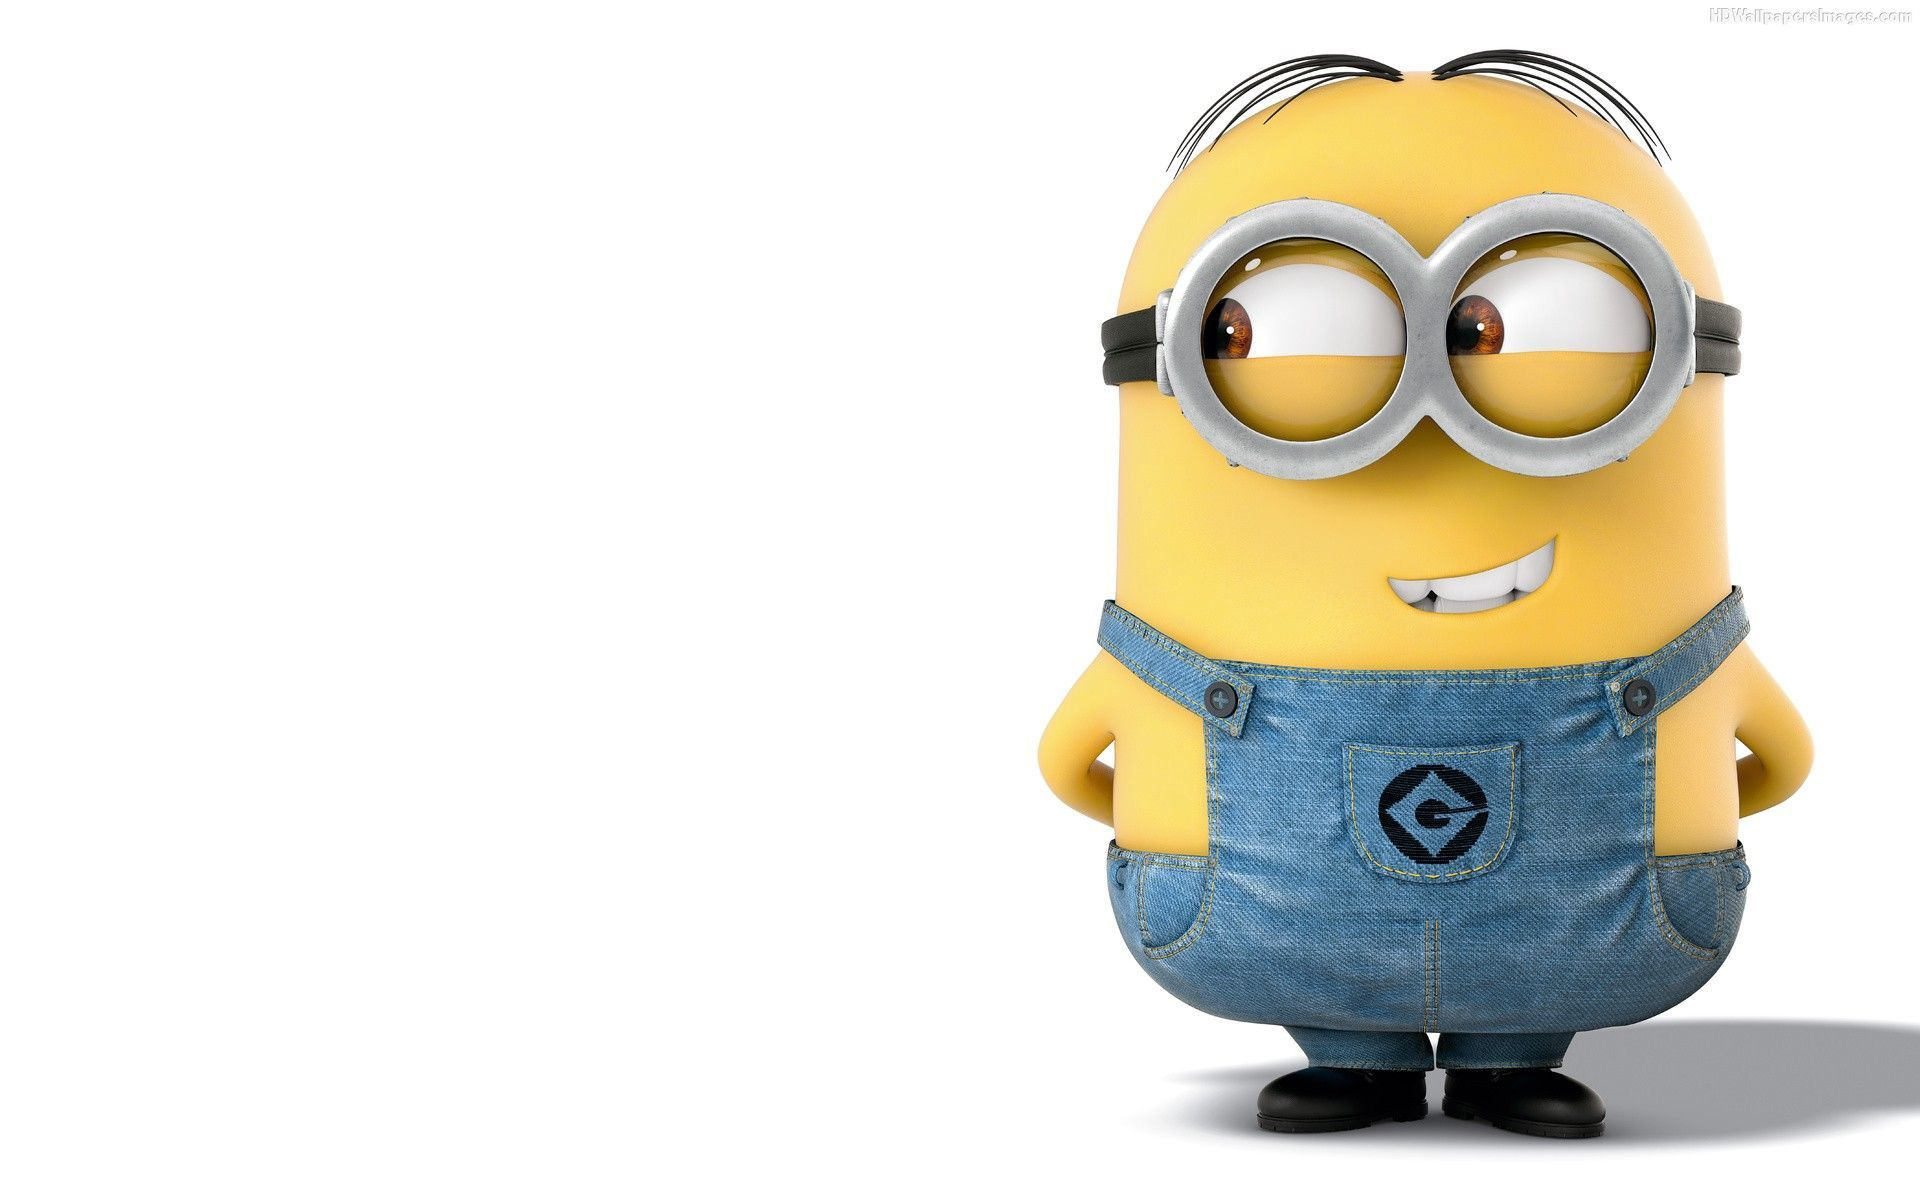 Funny Minions Wallpapers Top Free Funny Minions Backgrounds